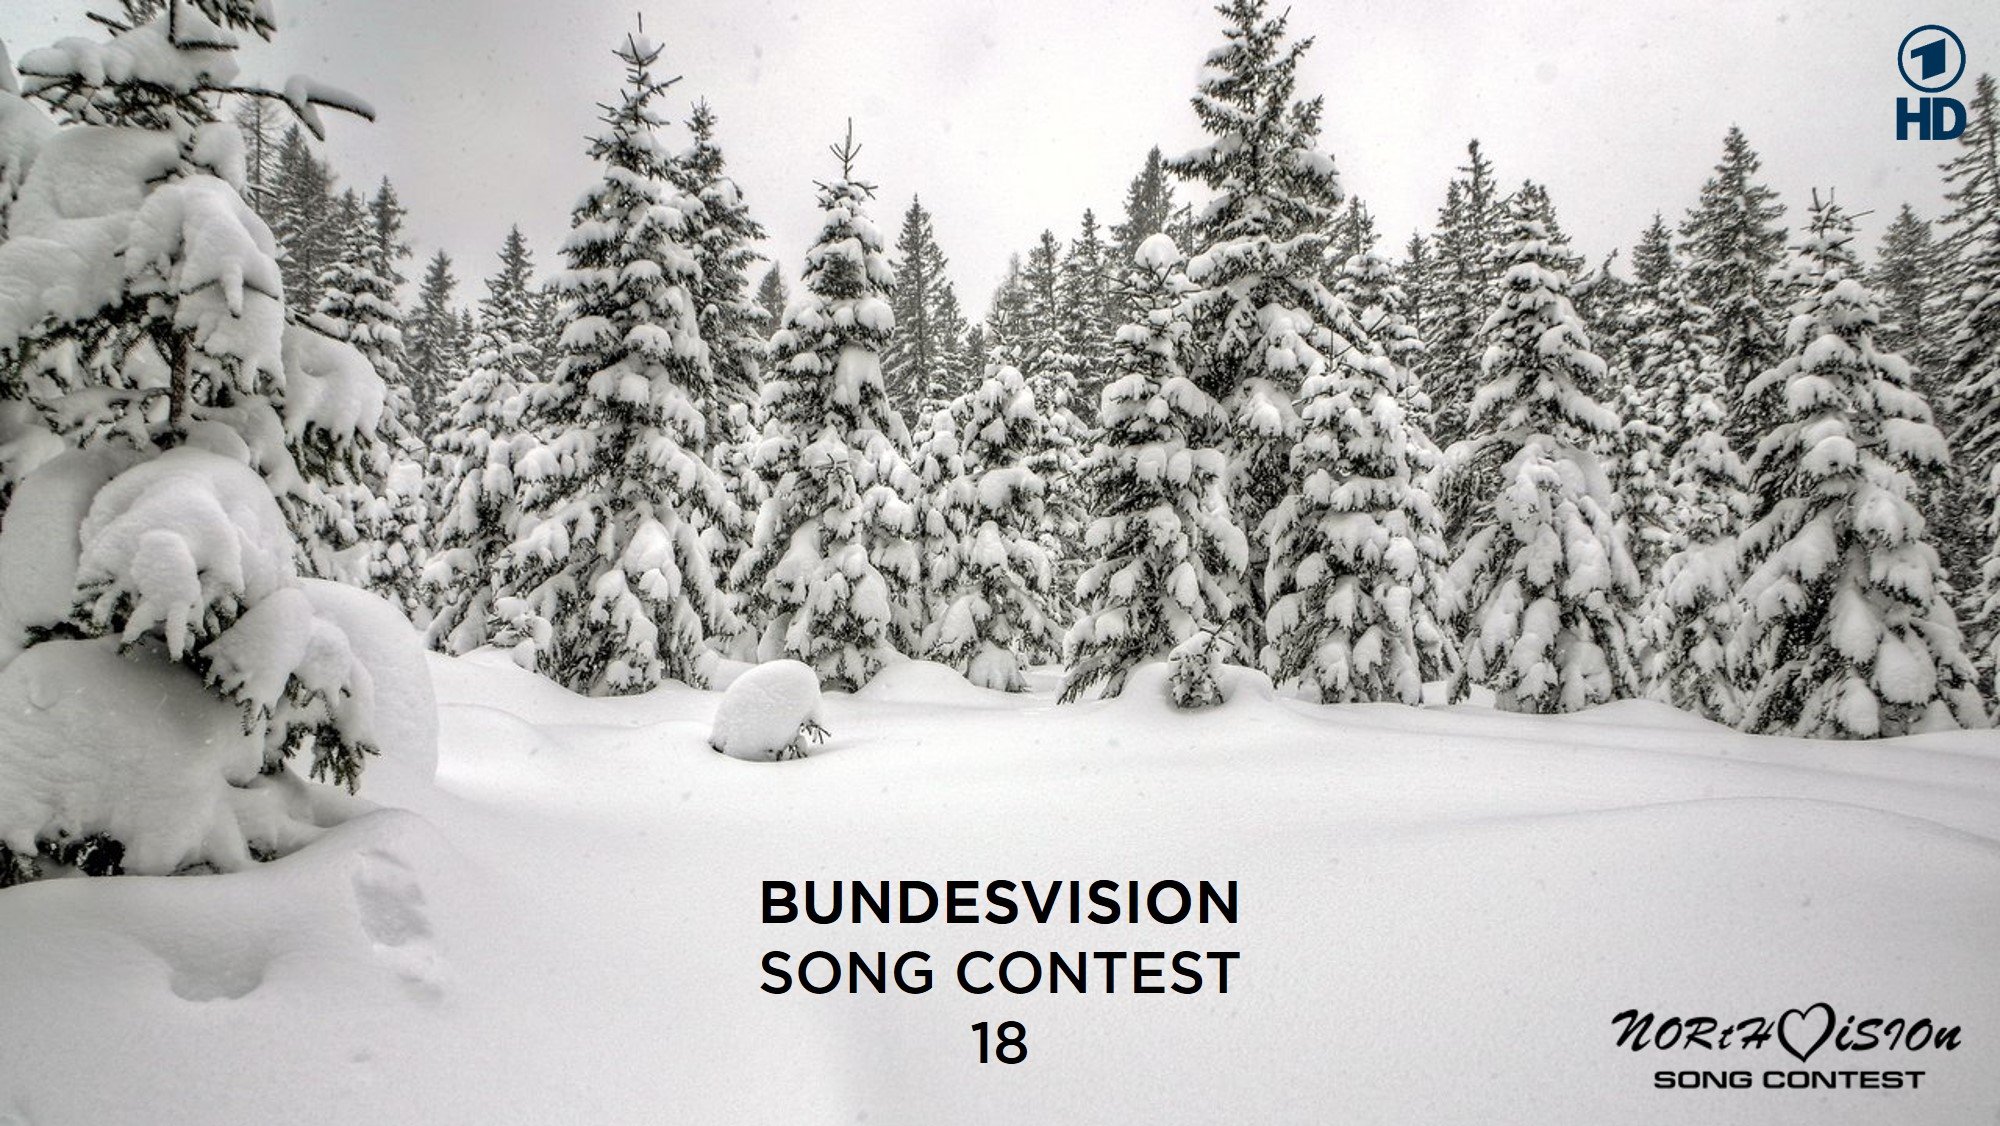 Bundesvision Song Contest 18